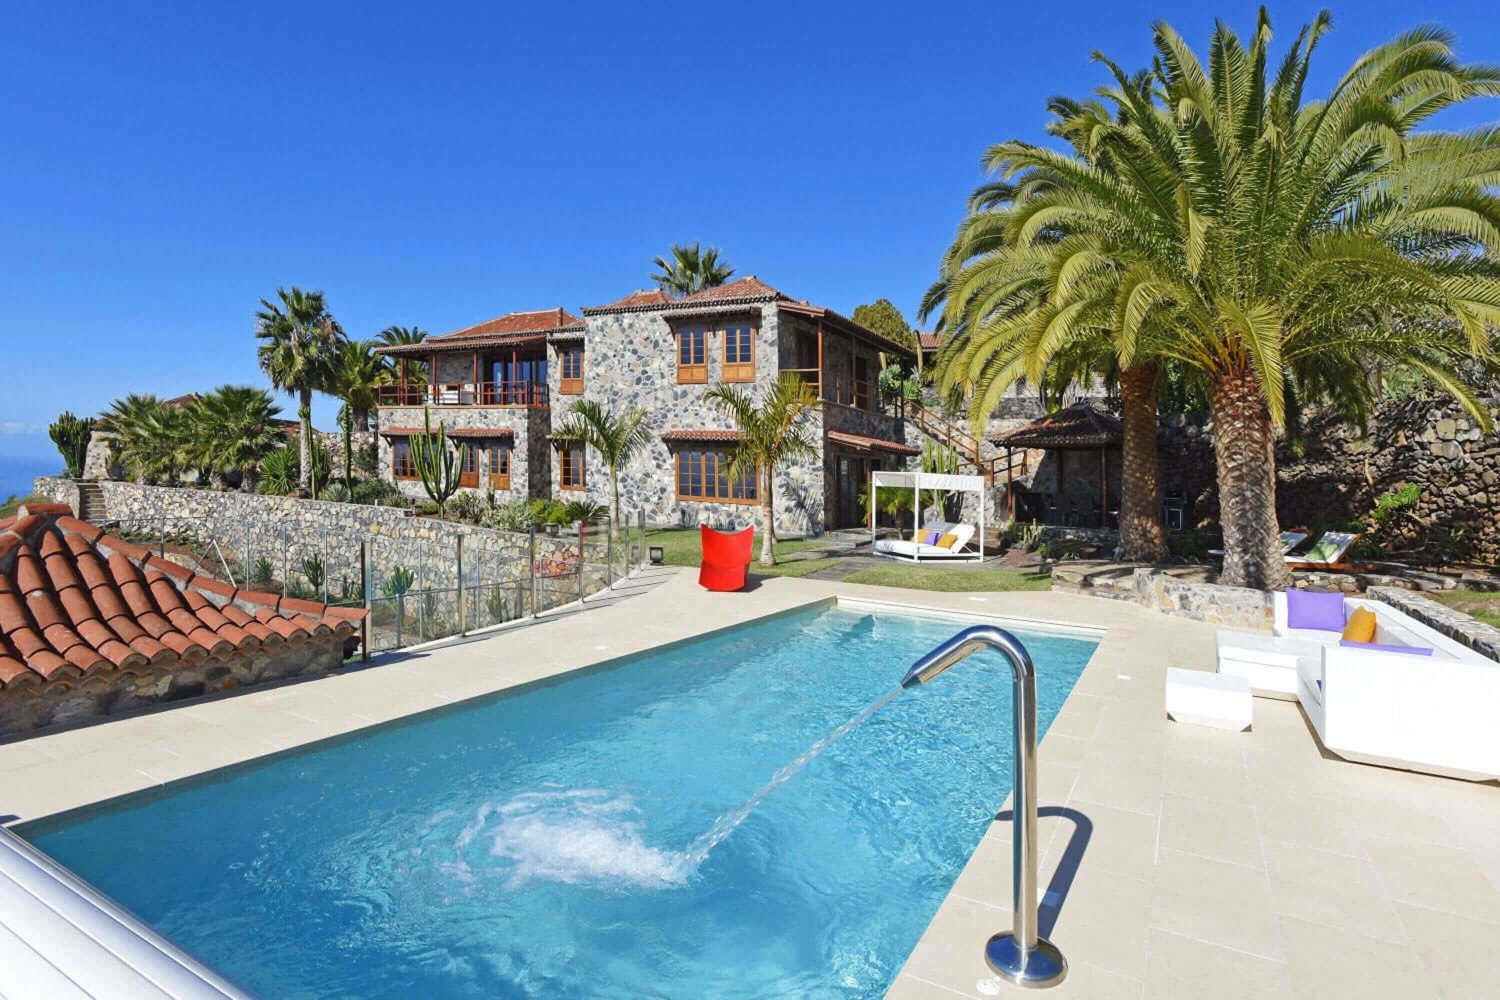 Luxurious large holiday house with a beautiful pool area, magnificent gardens and fantastic views to the sea and mountains